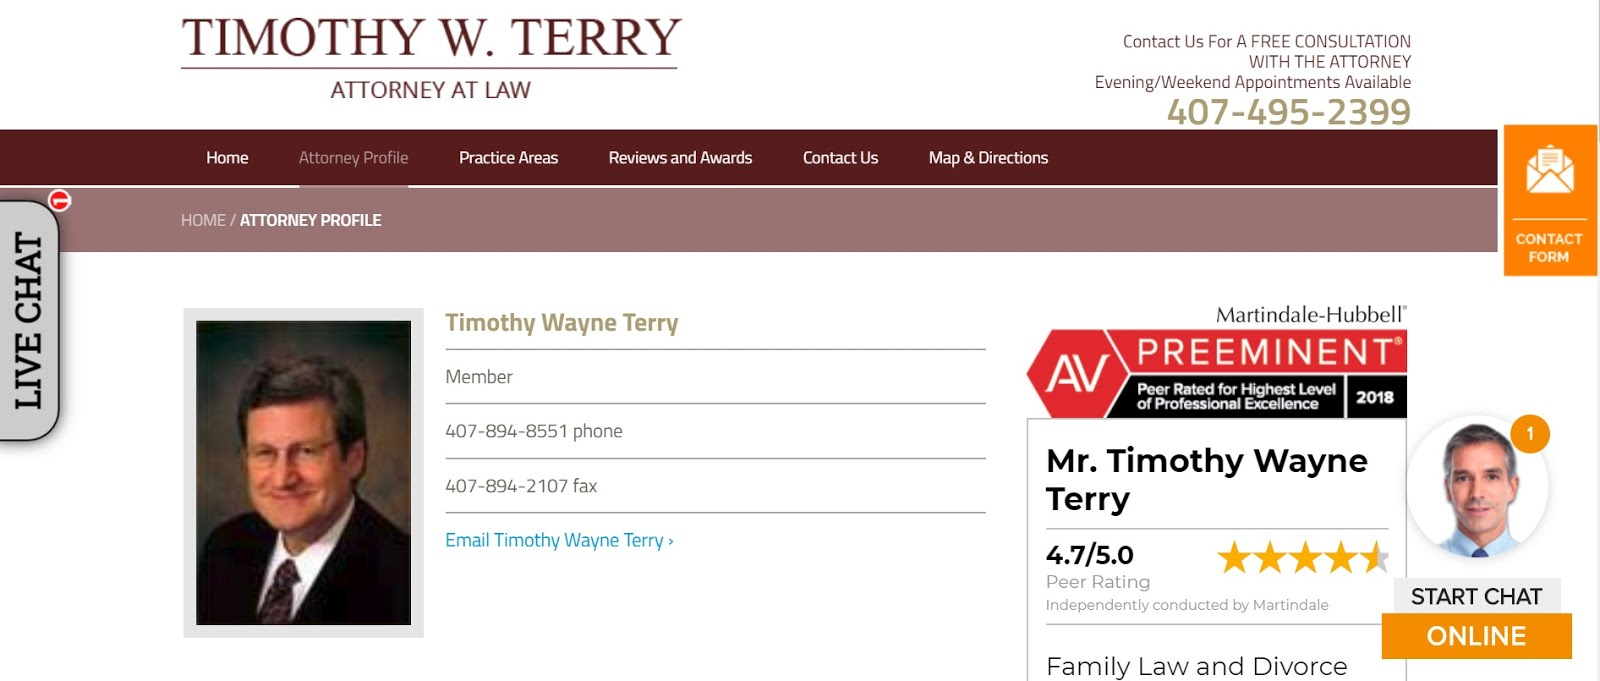 Timothy W. Terry, Attorney in Florida